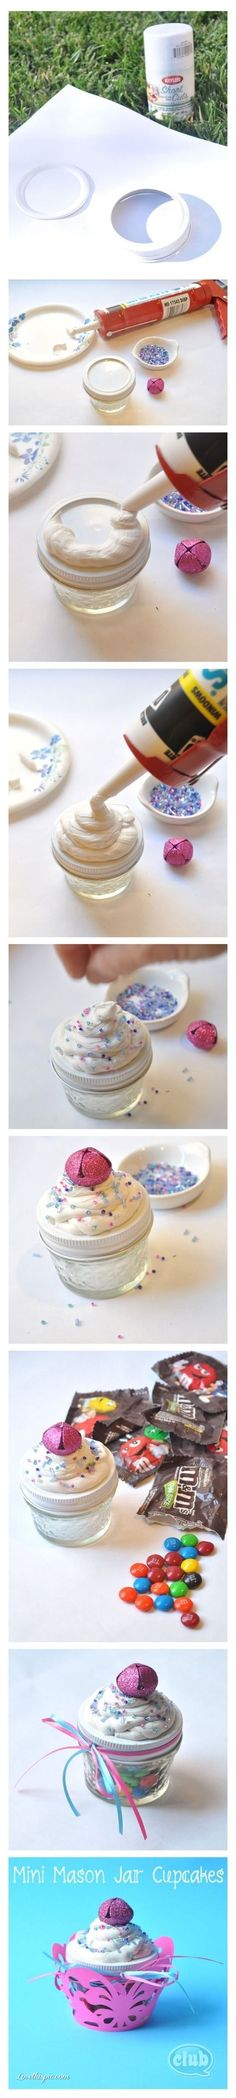 DIY Mason Jar Cupcakes Pictures, Photos, and Images for Facebook, Tumblr, Pinterest, and Twitter